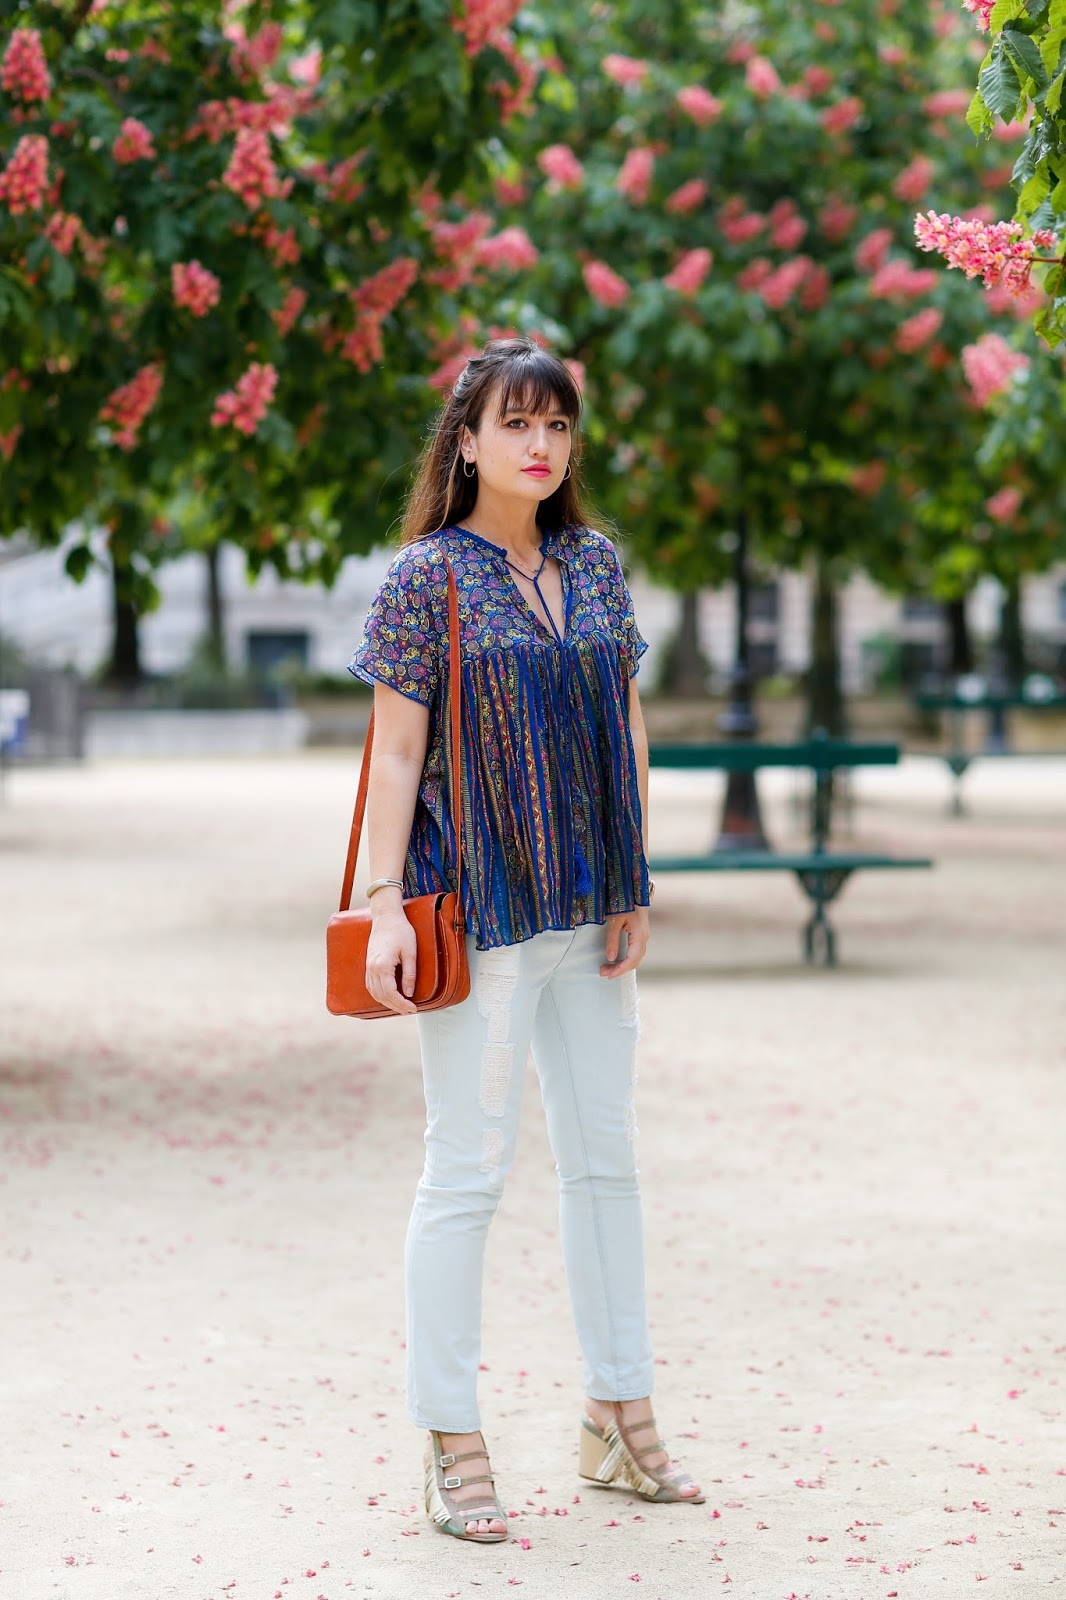 meet me in paree, blogger, fashion, style, look, meetmeinparee, ootd, cookbook, parisian style